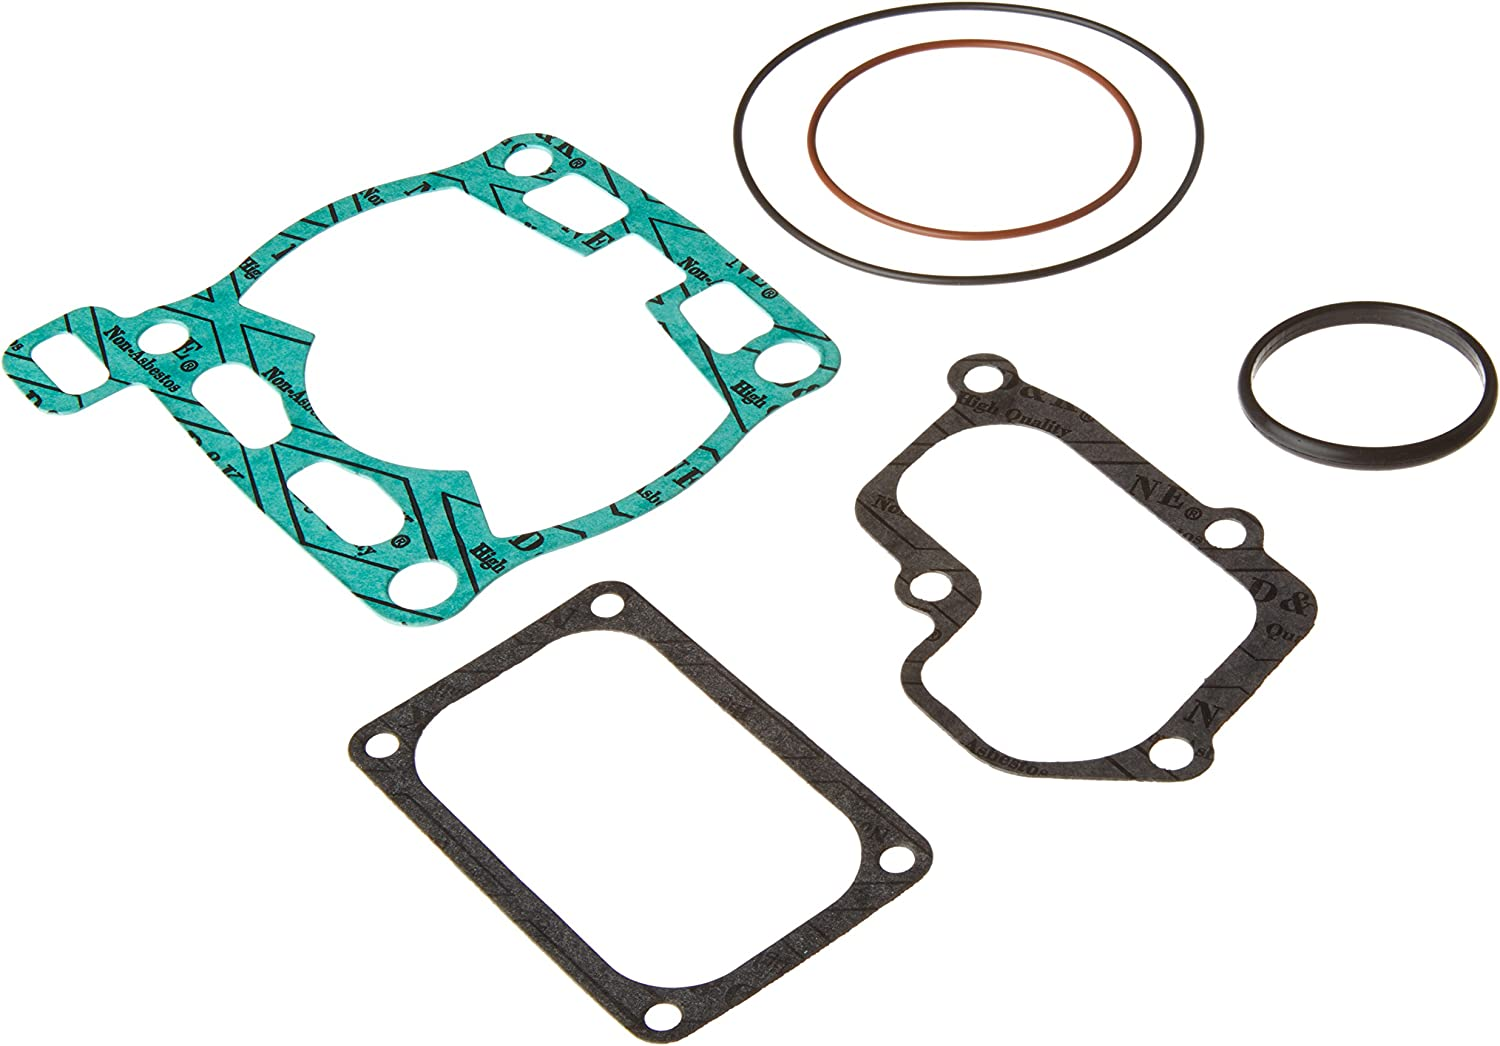 04-07 New Vertex Top End Gasket Kit Compatible with//Replacement for Suzuki RM 125 860VG810550